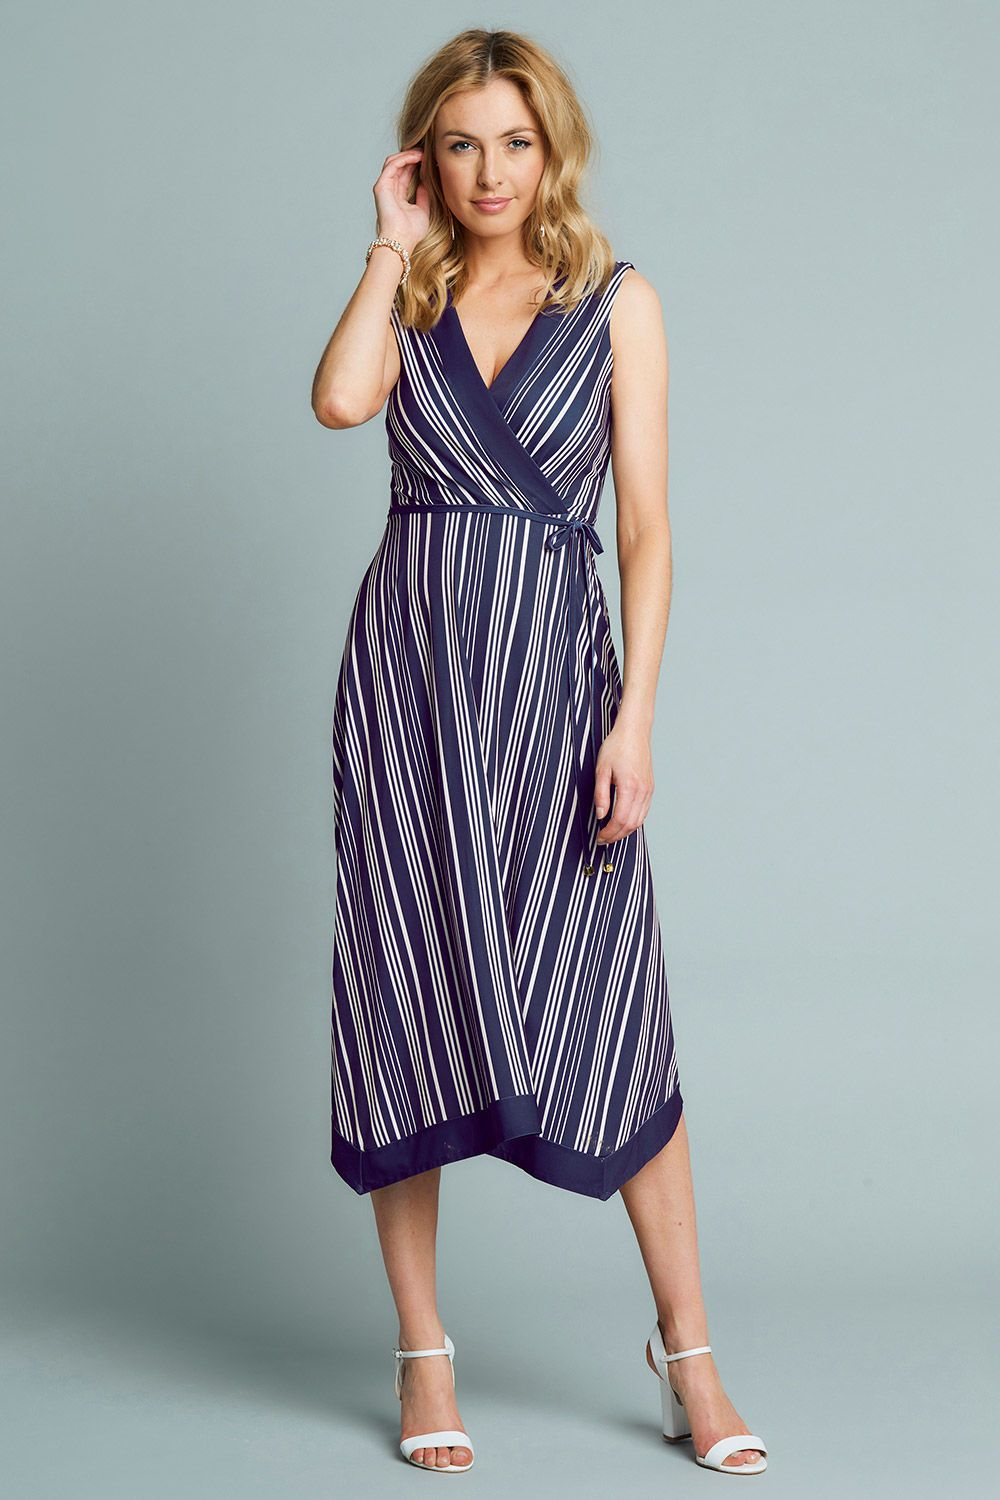 9899fc4976e Striped Wrap Hanky Hem Dress - The clever use of vertical lines sweep  across and down the body to create an optical illusion of making you look  taller and ...